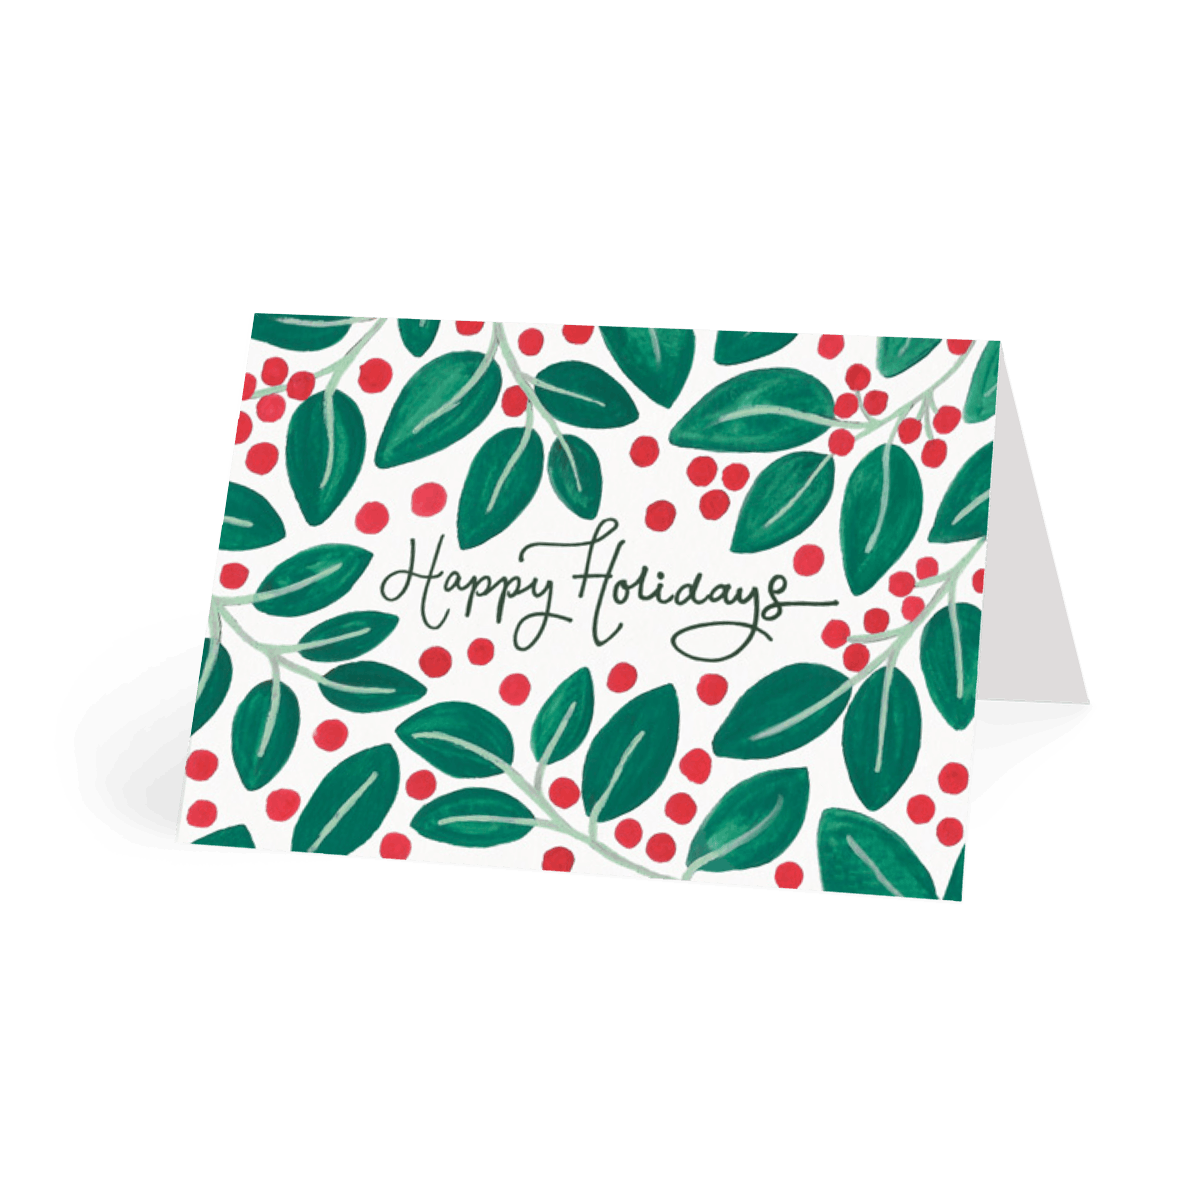 Https%3a%2f%2fwww.papier.com%2fproduct image%2f46852%2f14%2fchristmas berries leaves 6217 front 1537287141.png?ixlib=rb 1.1